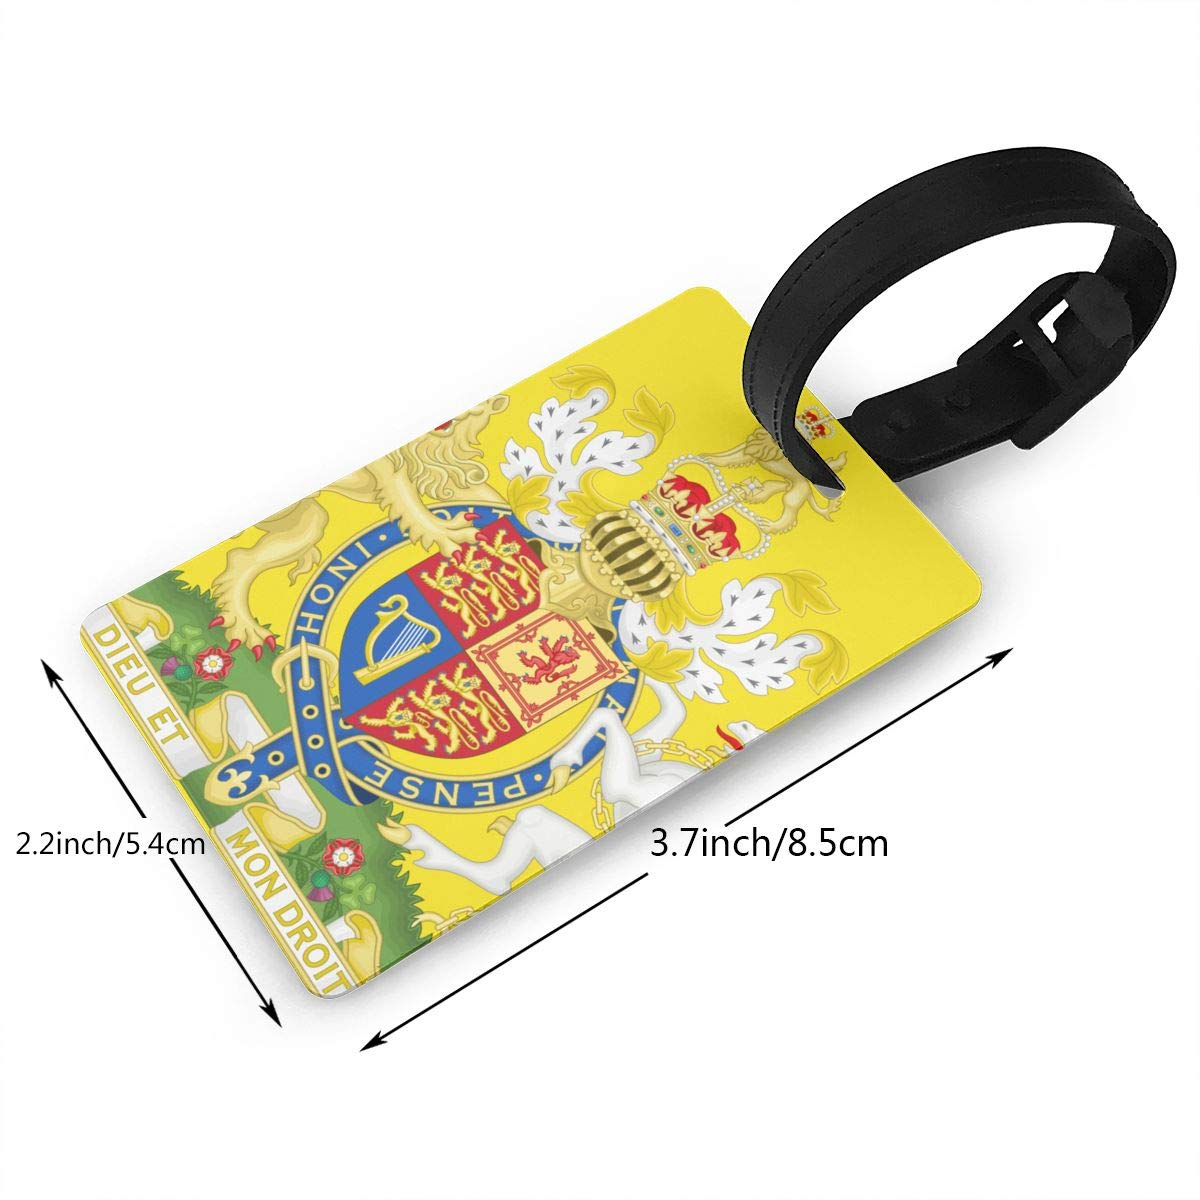 KODW12 Royal Coat of Arms of The United Kingdom Luggage Tag Travel Bag Labels Suitcase Bag Tag Name Address Cards by KODW12 (Image #2)